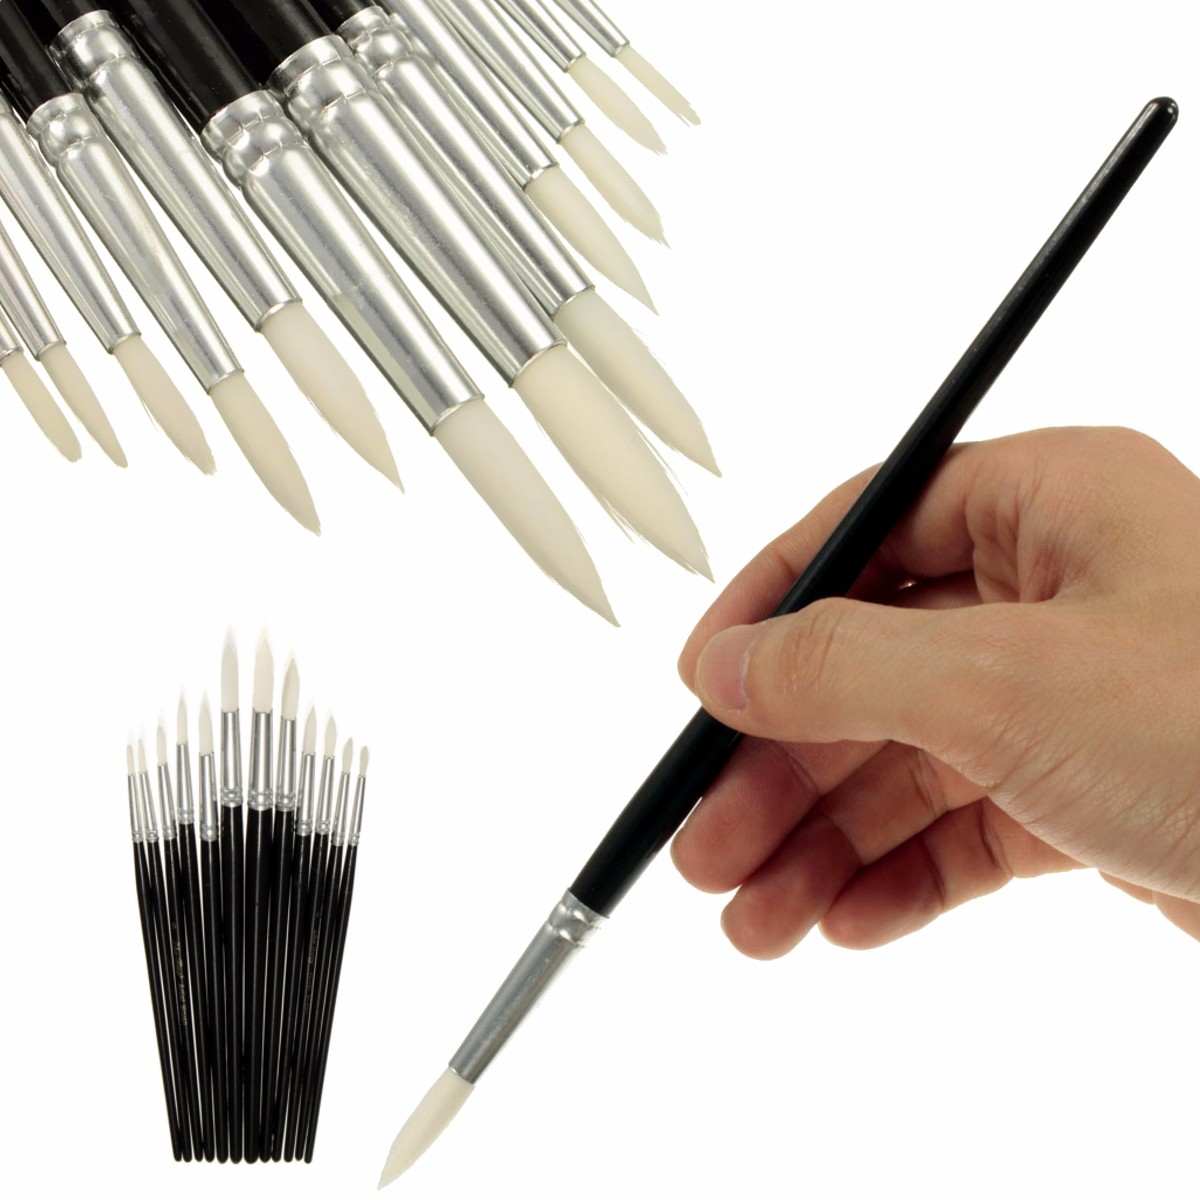 12Pcs Artist Art Round Paint Tip Brush Fine Detail Crafts Hobbies Painting Set Paint Brush Gift